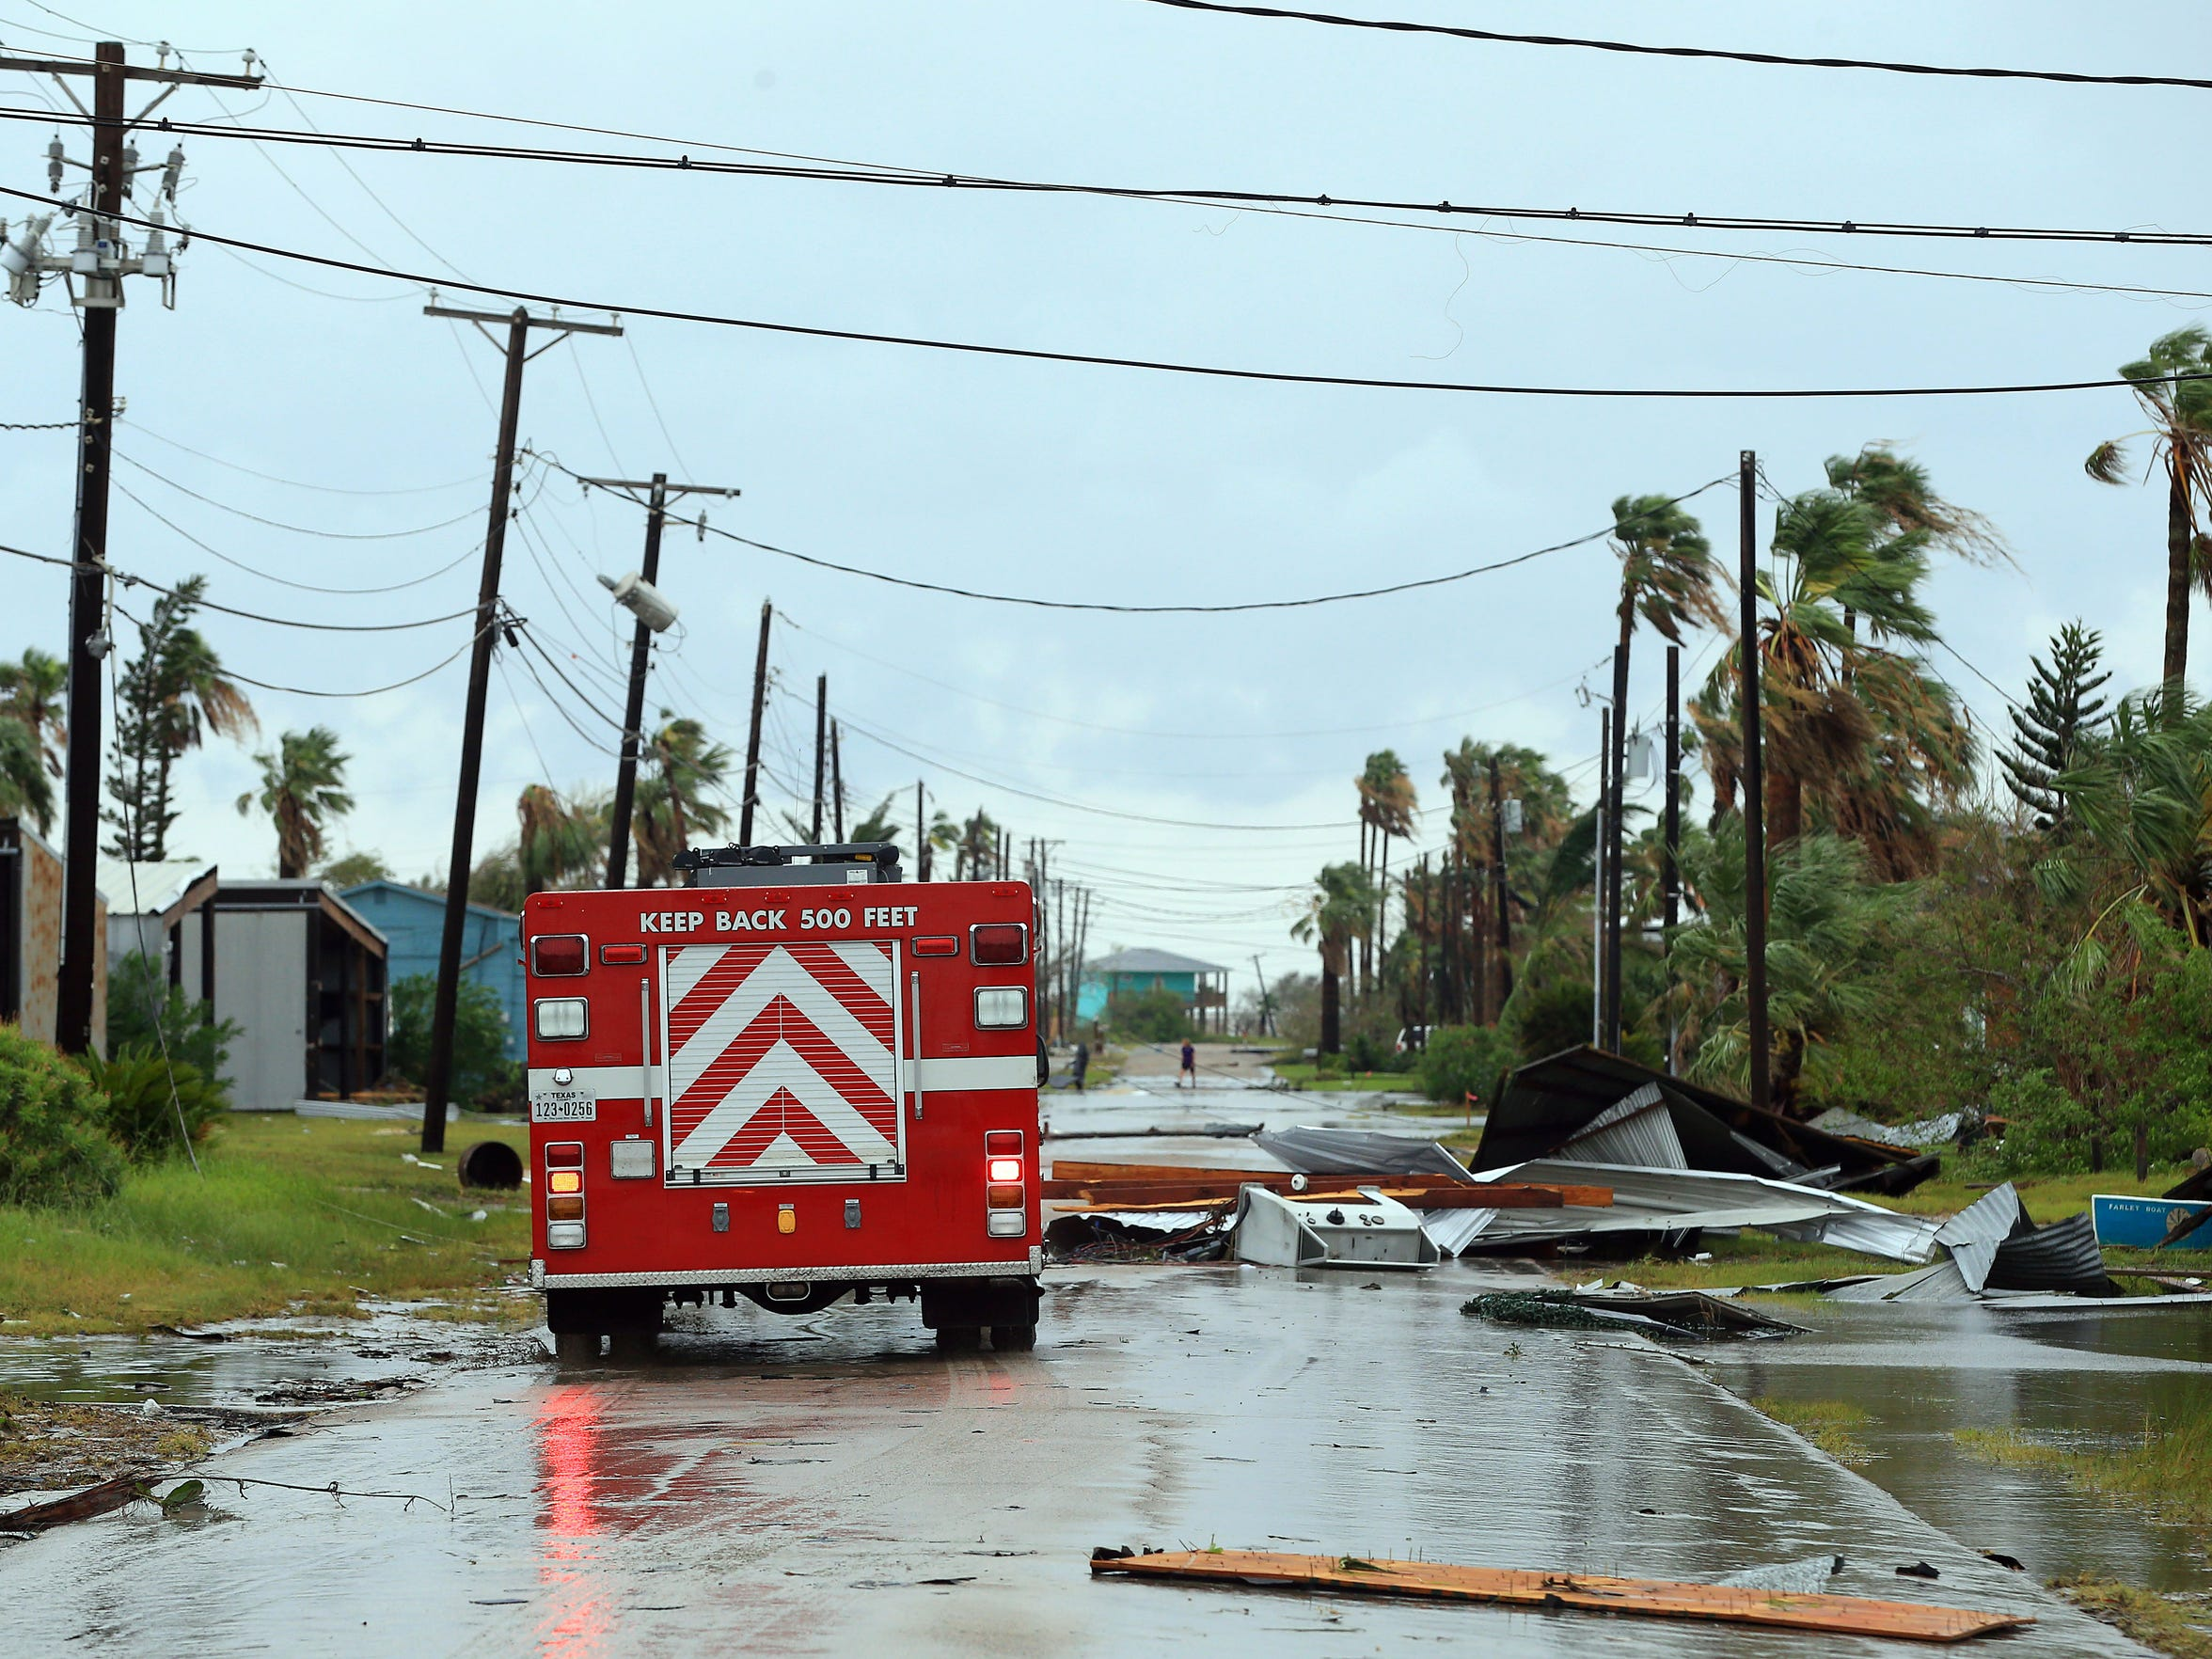 Port Aransas Fire Department survey the area after